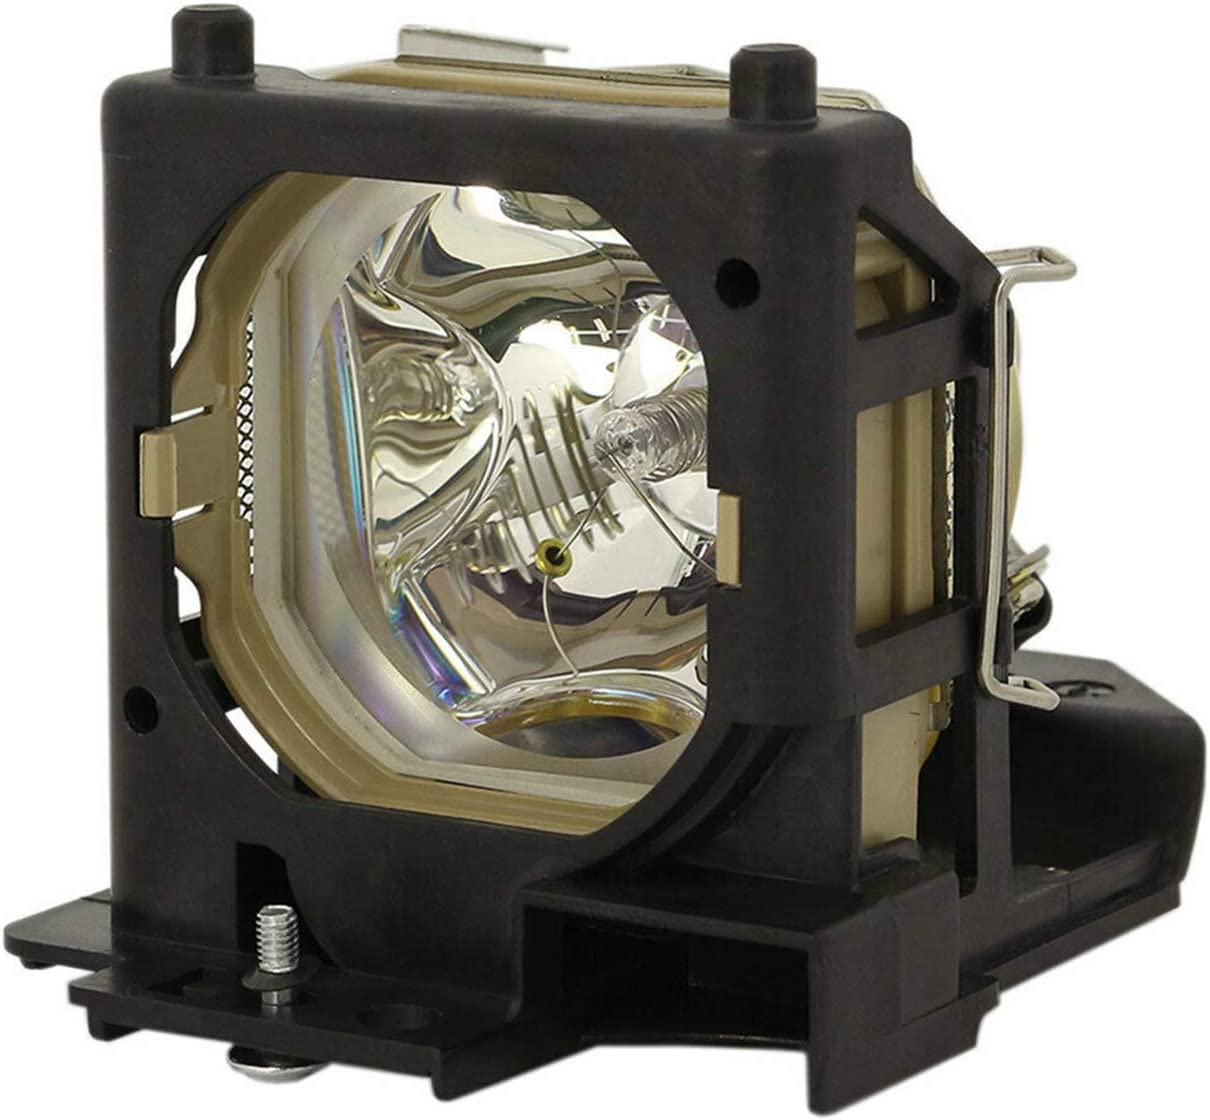 DT00671 78-6969-9790-3 Replacement Projector Lamp for Hitachi CP-S335 CP-X335 CP-X340 CP-X345 ED-S3350 ED-X3400 ED-X3450 CP-X3350 CP-X3400 CP-X3450, Lamp with Housing by CARSN